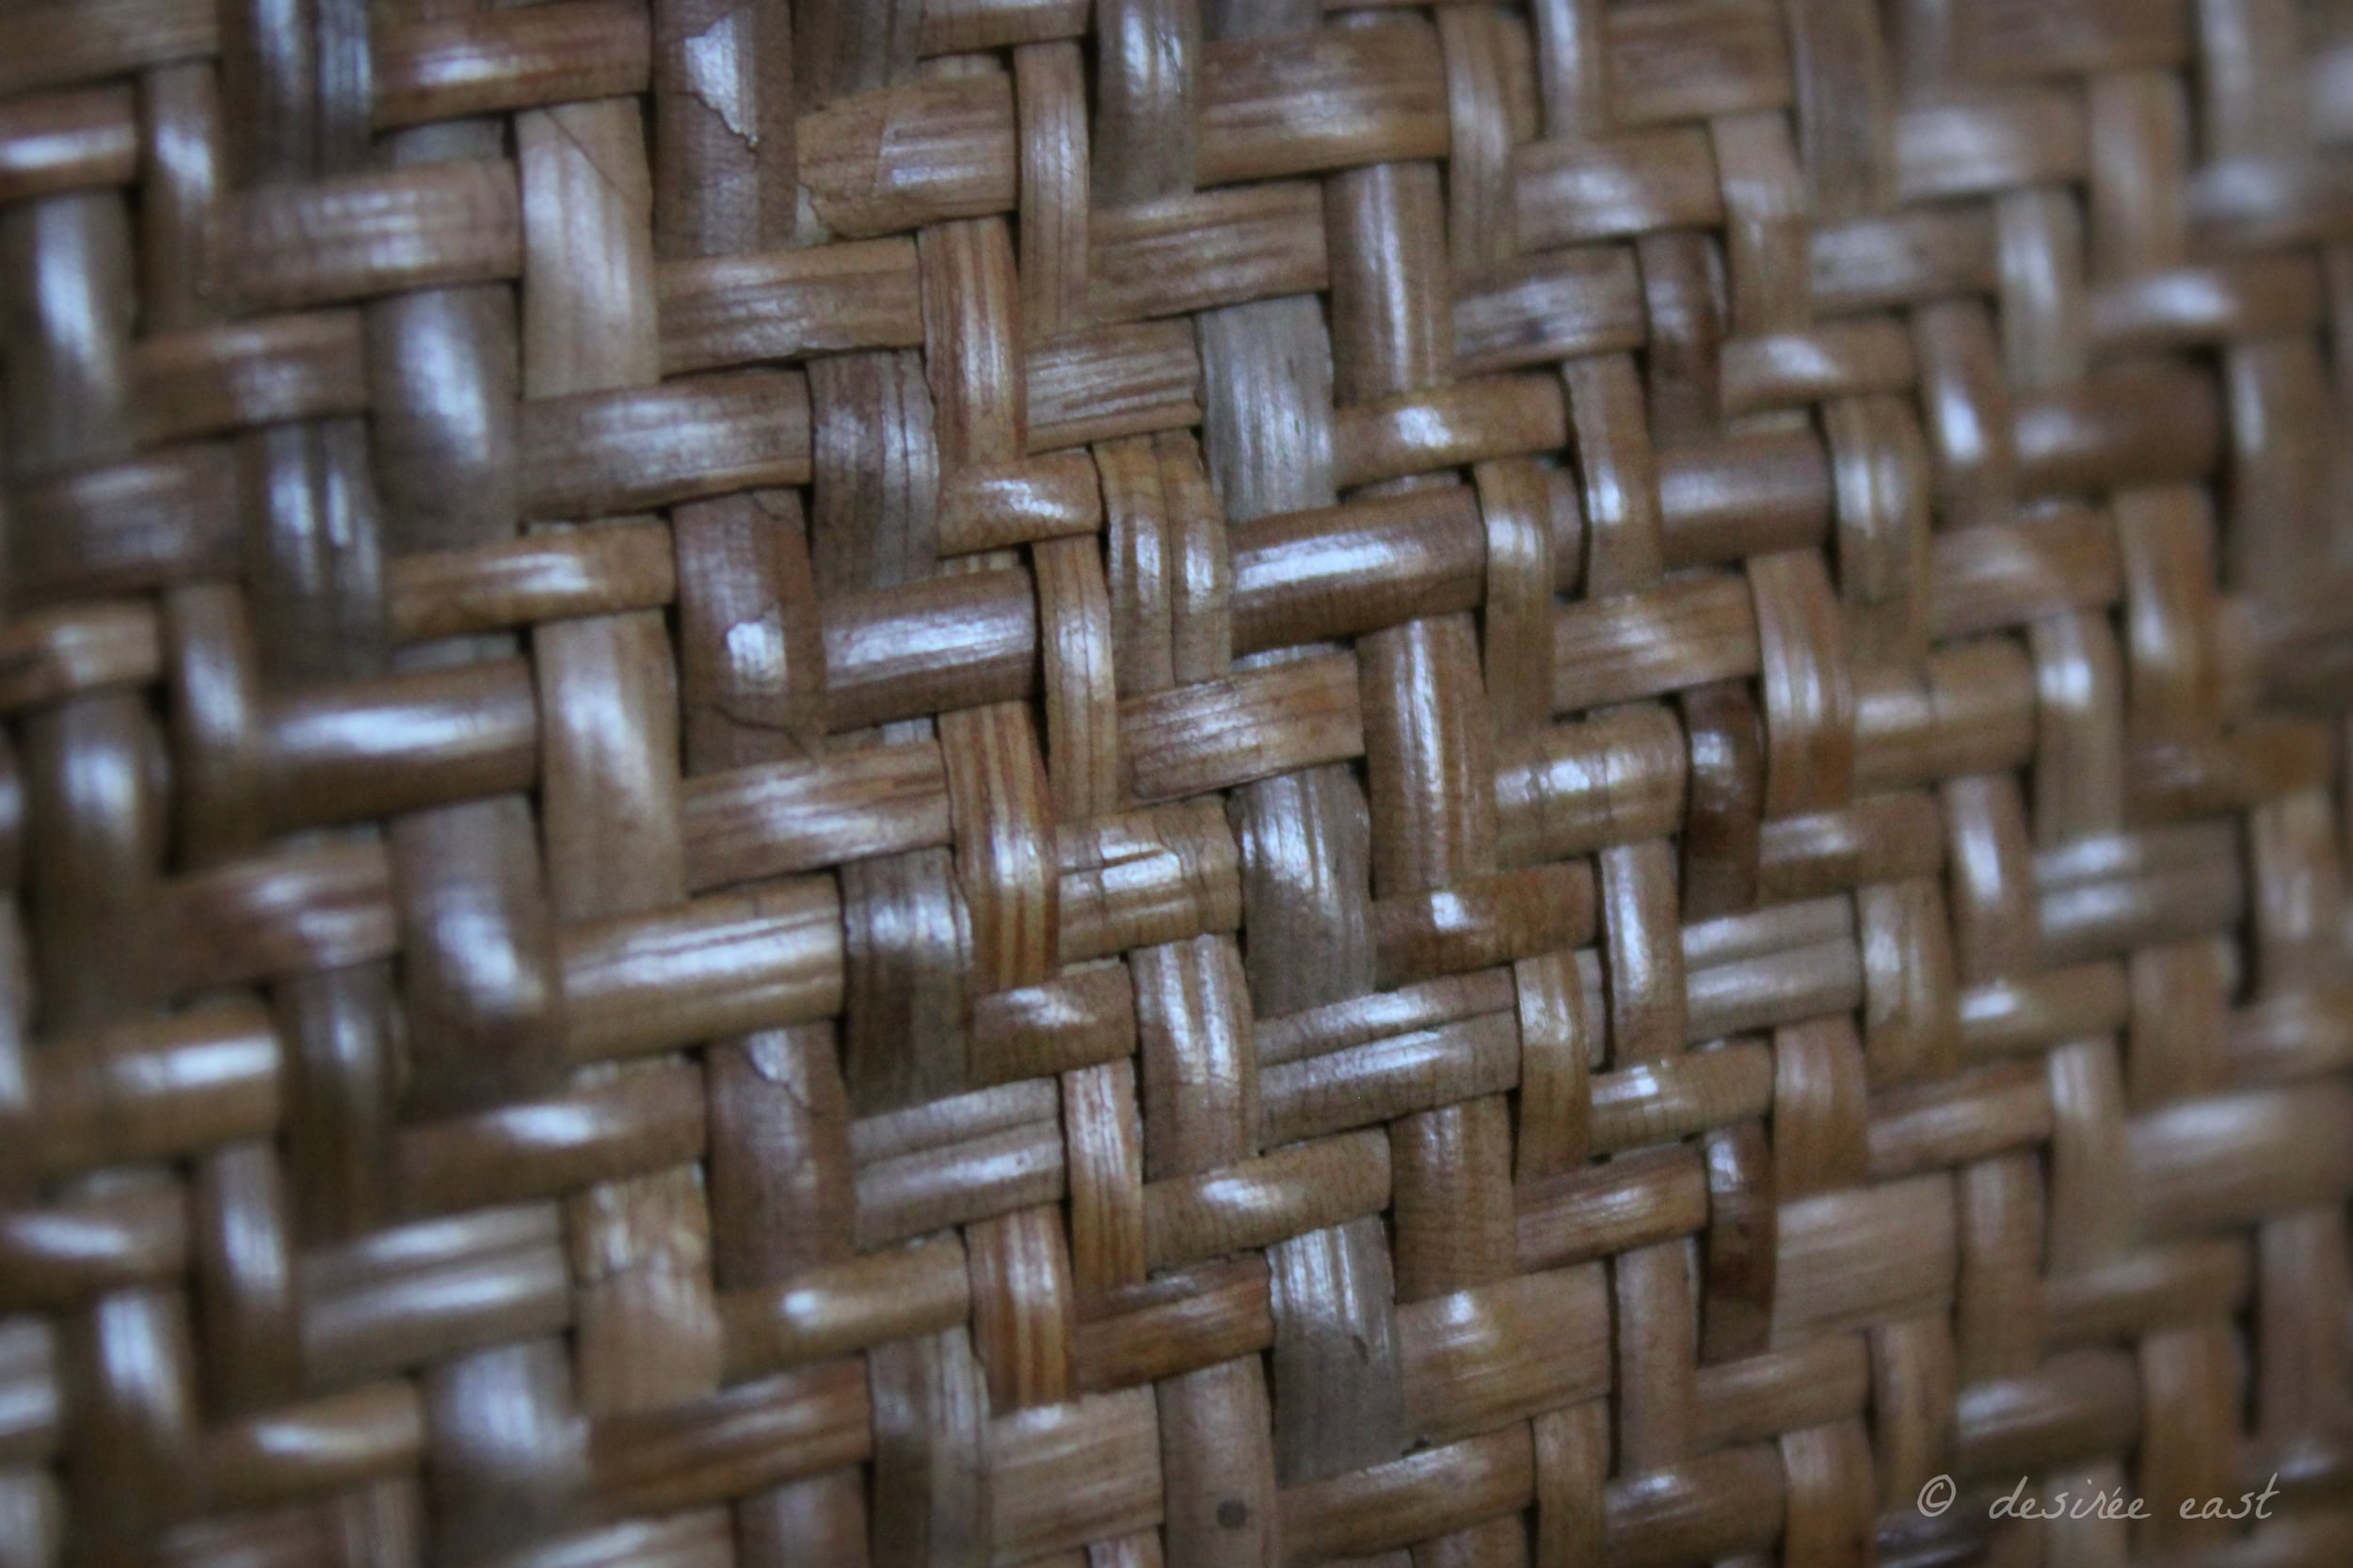 Woven, handmade artwork from the island of Borneo. Straight lines repeat themselves. Photo by Desiree East